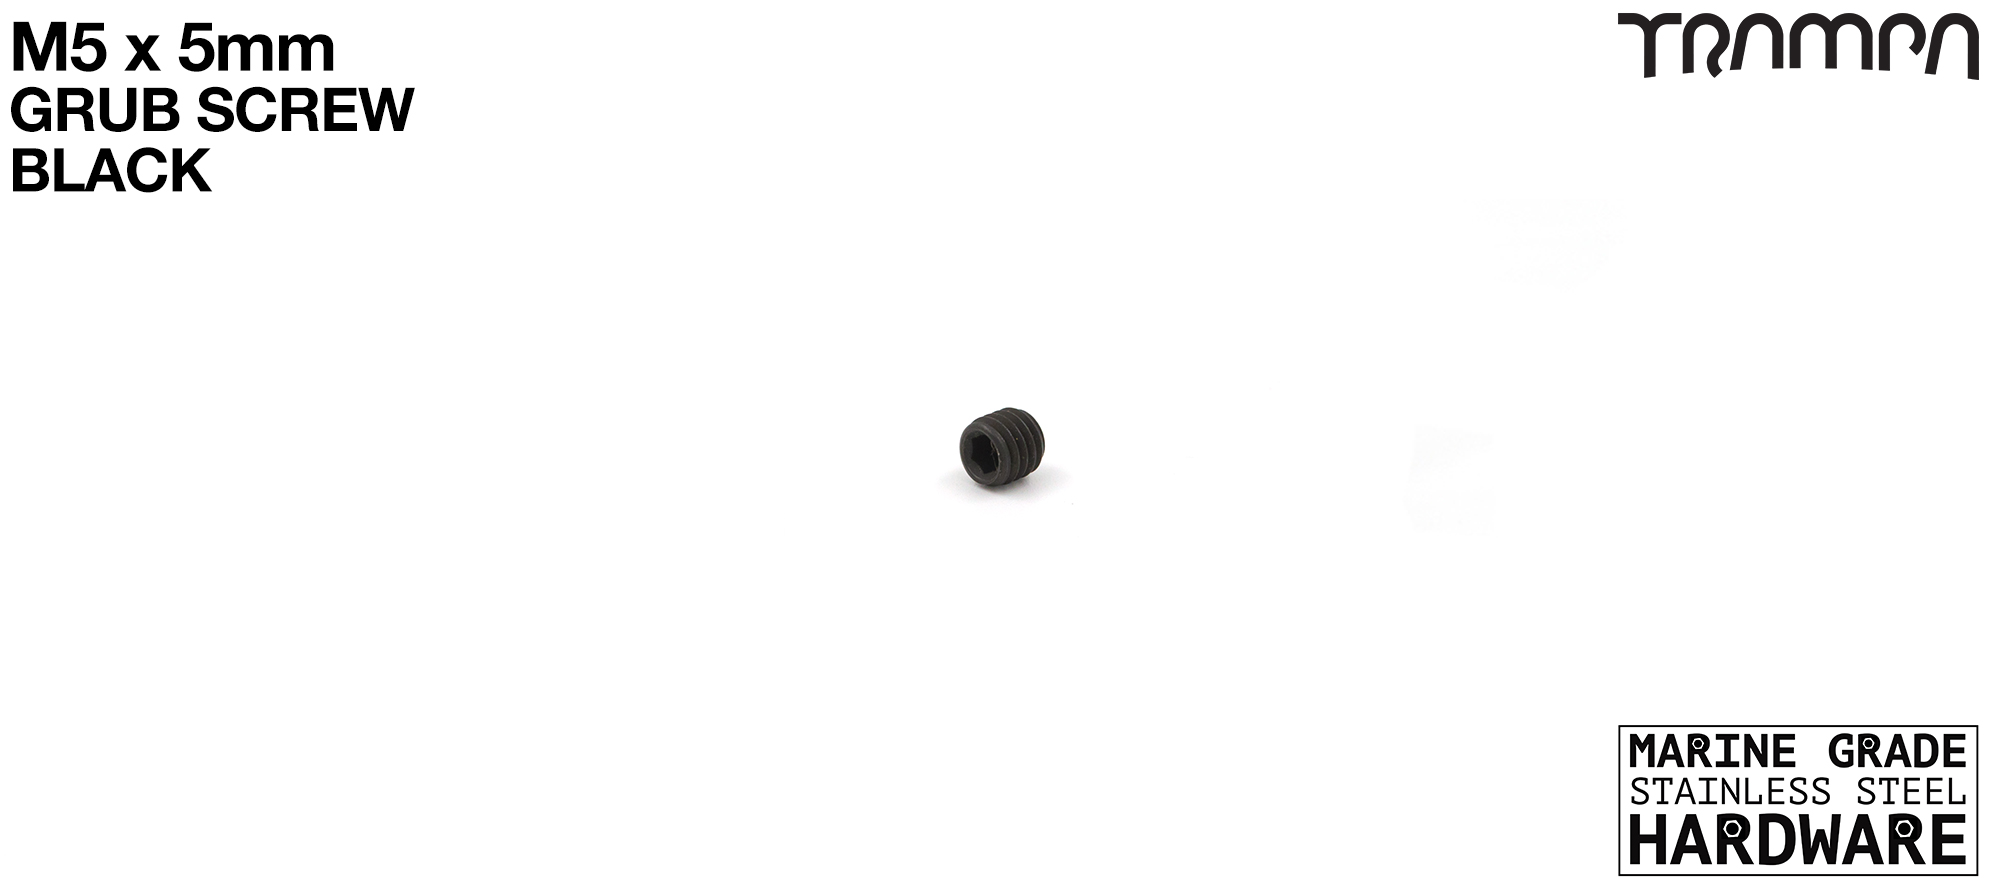 M5 x 5mm Grub Screw Marine Grade Stainless Steel - Connects into Motor Mount to give Axle position on Mountainboards